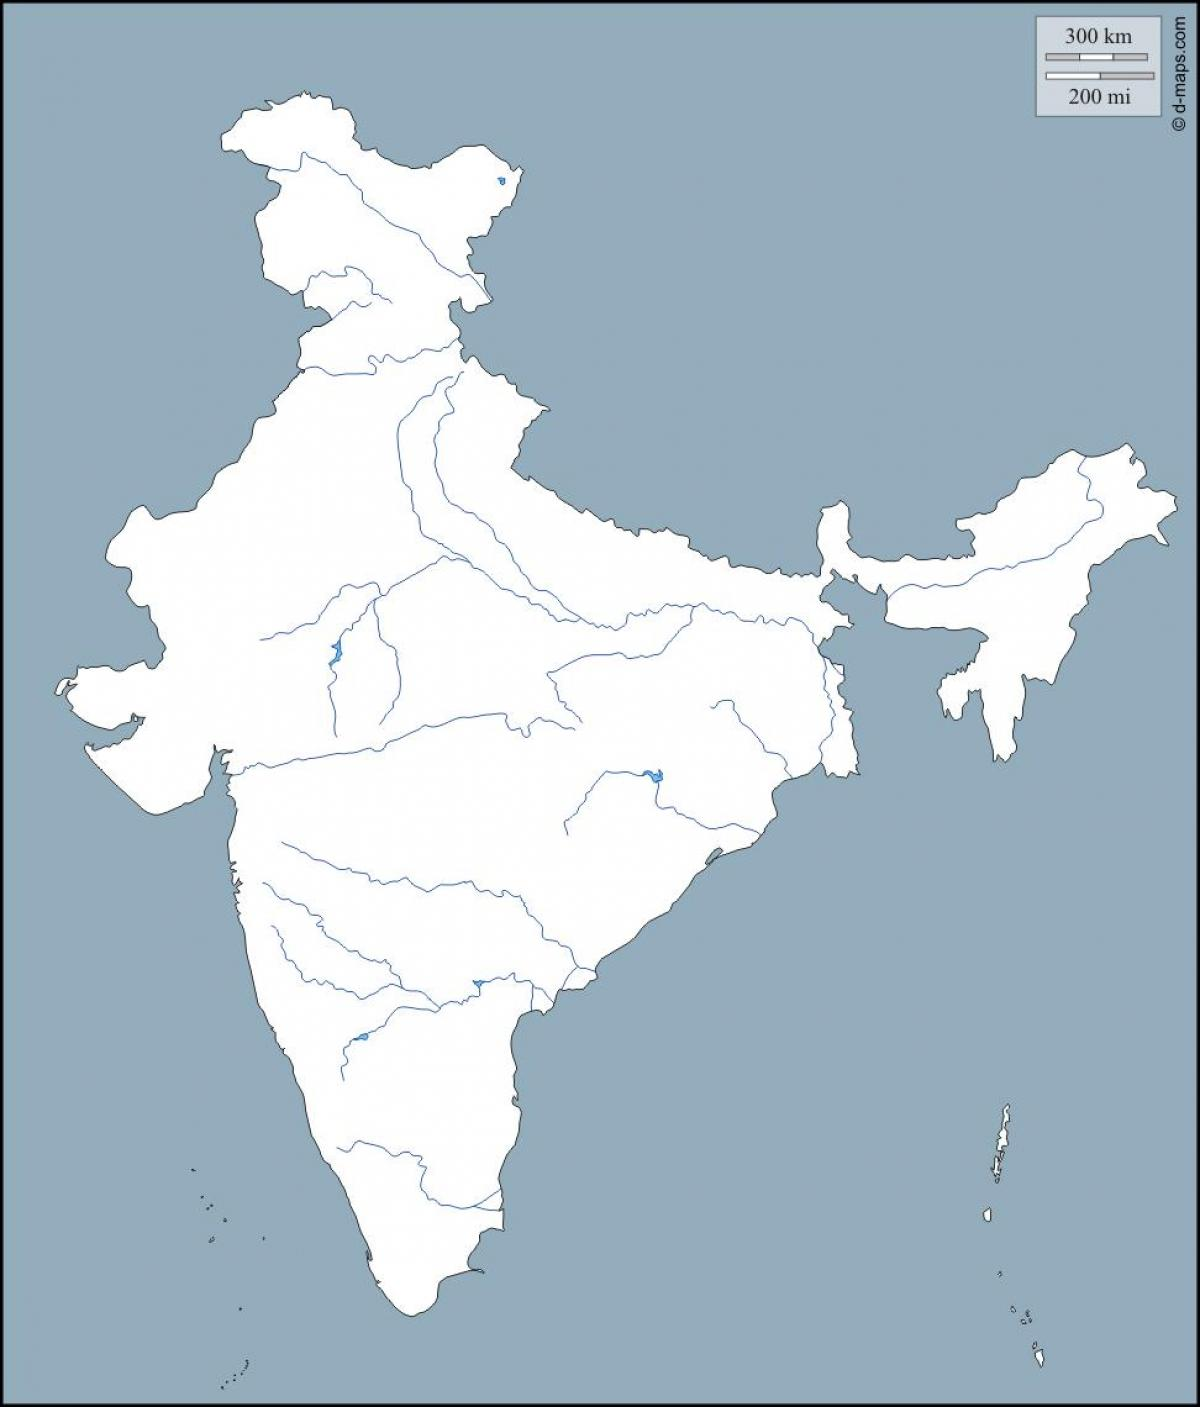 Blank River Map Of India